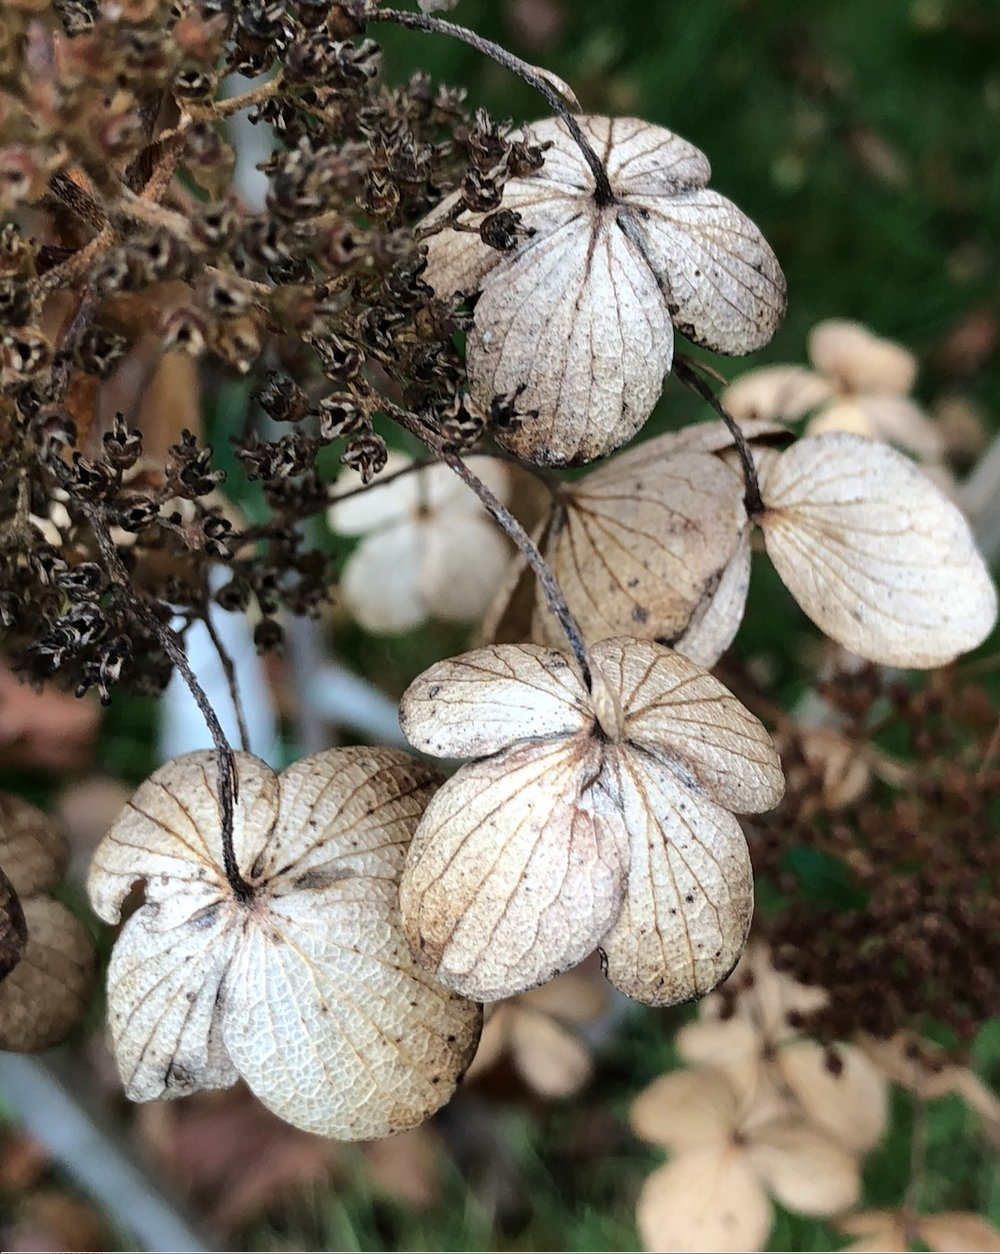 Iphone x photos seanwalmsleydesign hydrangea flowers turning toward the ground saratoga springs nynbspphoto mightylinksfo